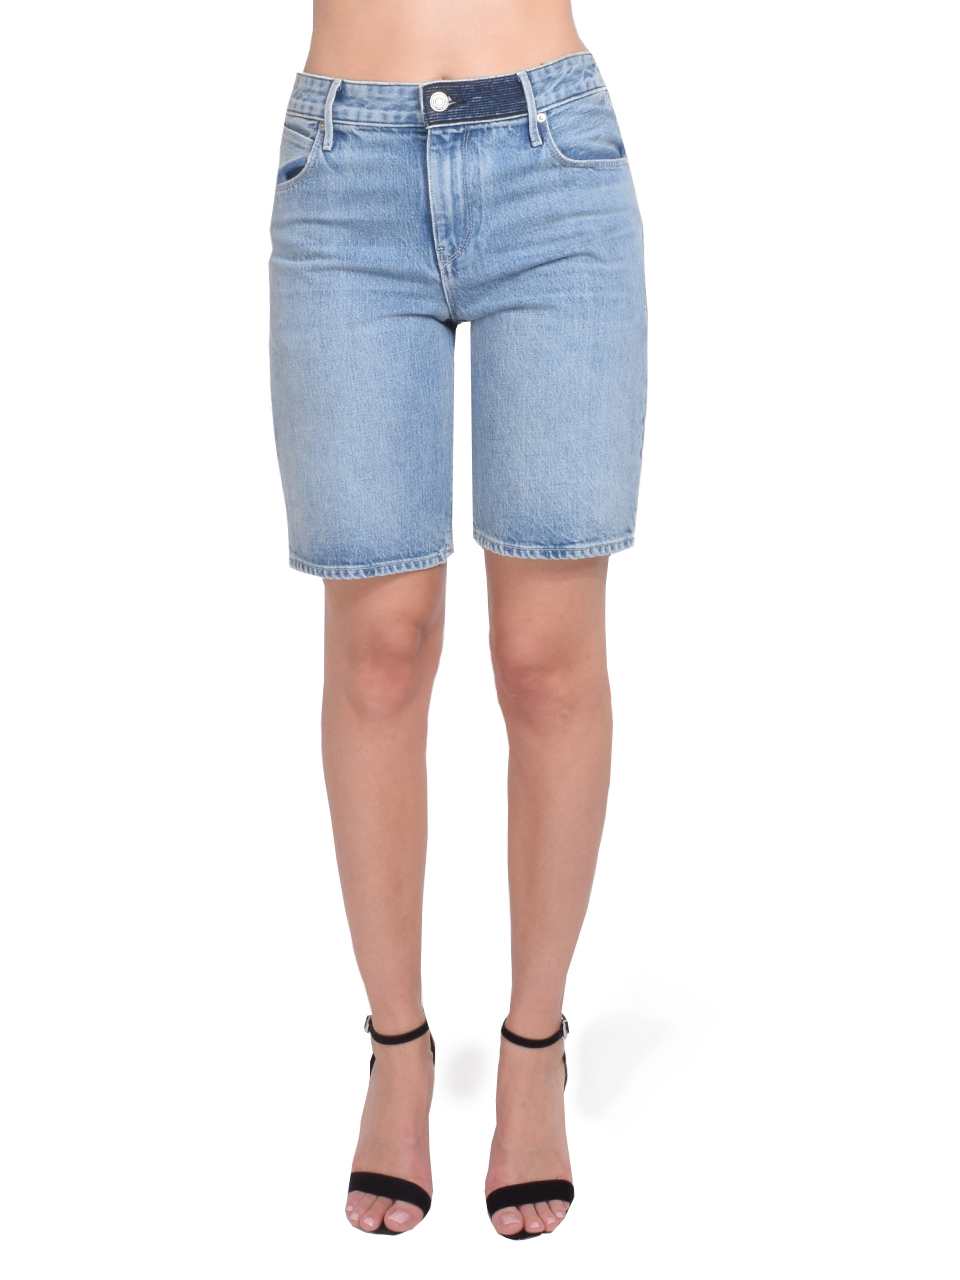 RtA Jami Baggy Short in Gallo Blue  Front View  X1https://cdn11.bigcommerce.com/s-3wu6n/products/33229/images/109696/72__76689.1591221491.244.365.jpg?c=2X2